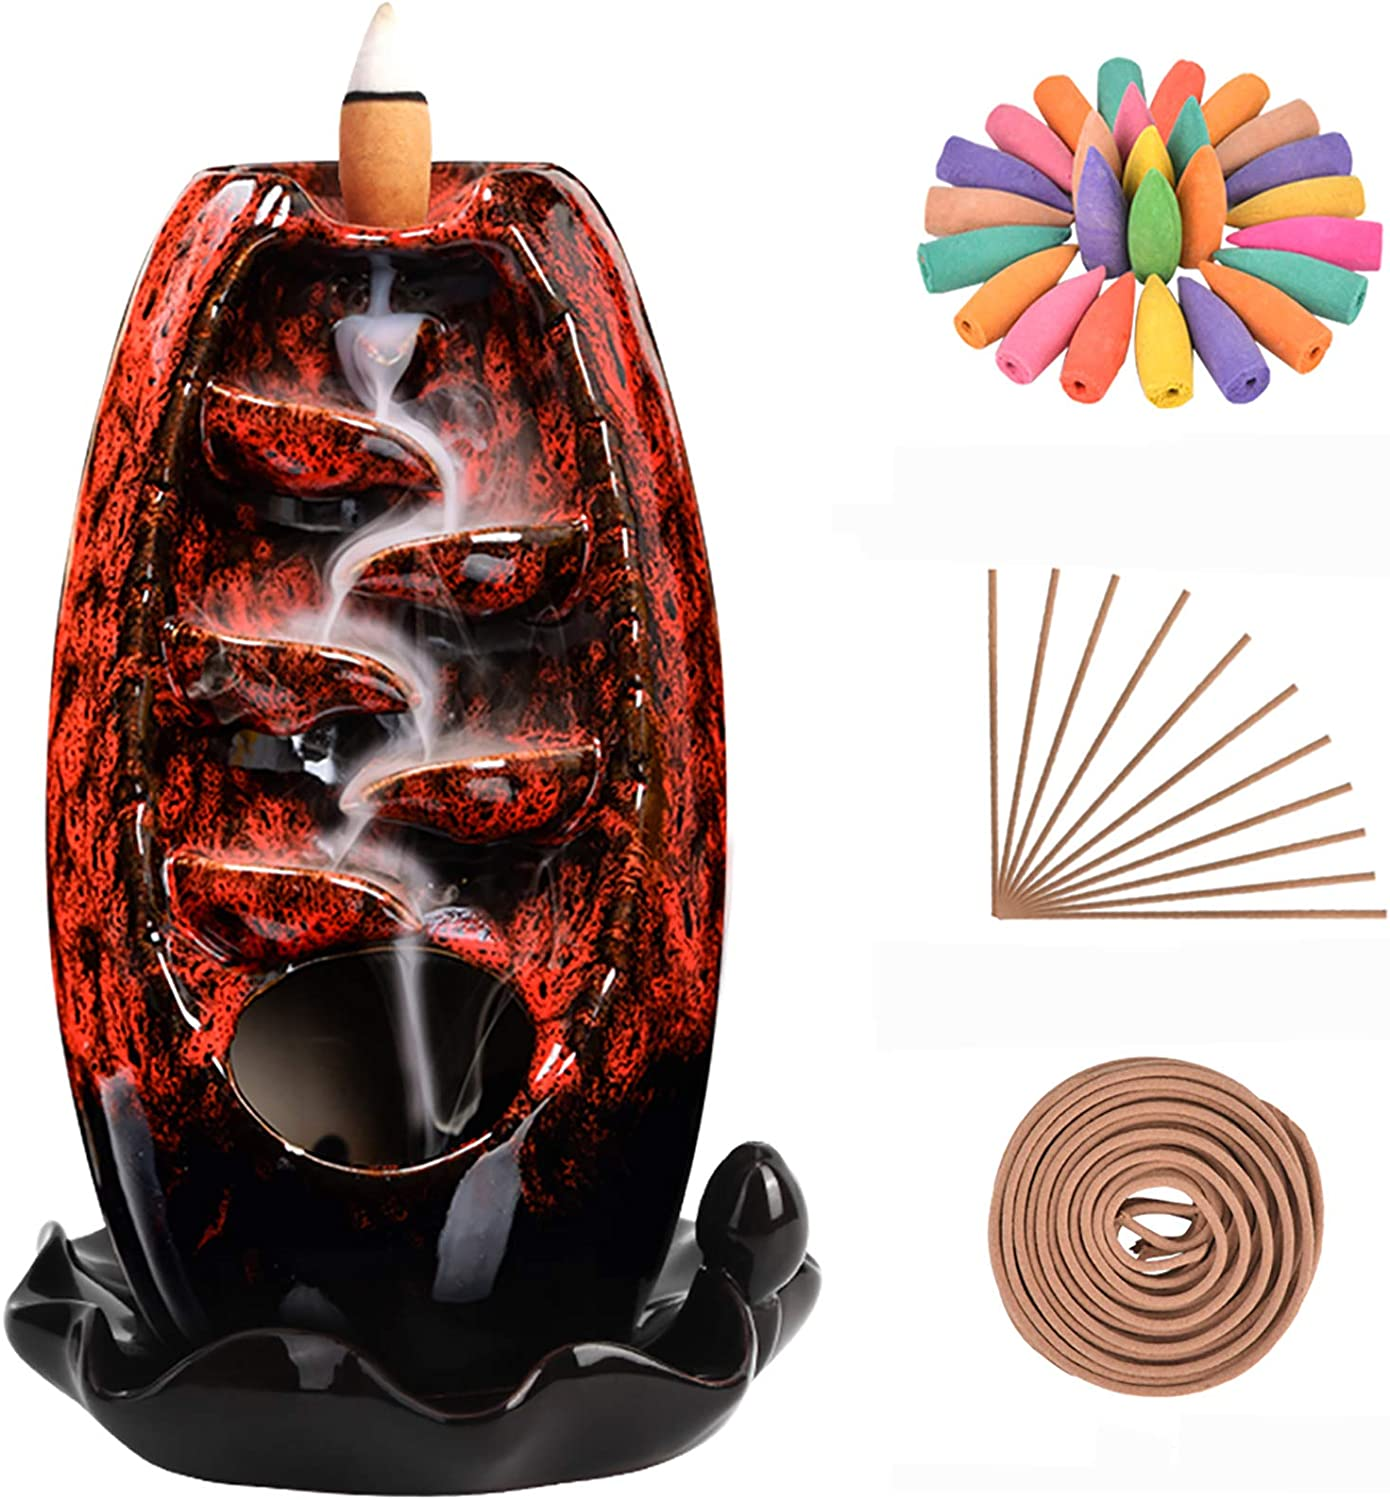 SOLEJAZZ Backflow Incense Burner Waterfall Incense Holder Ceramic with 120 Backflow Incense Cones + 30 Incense Stick for Home Office Yoga Aromatcherapy Ornamen, Red